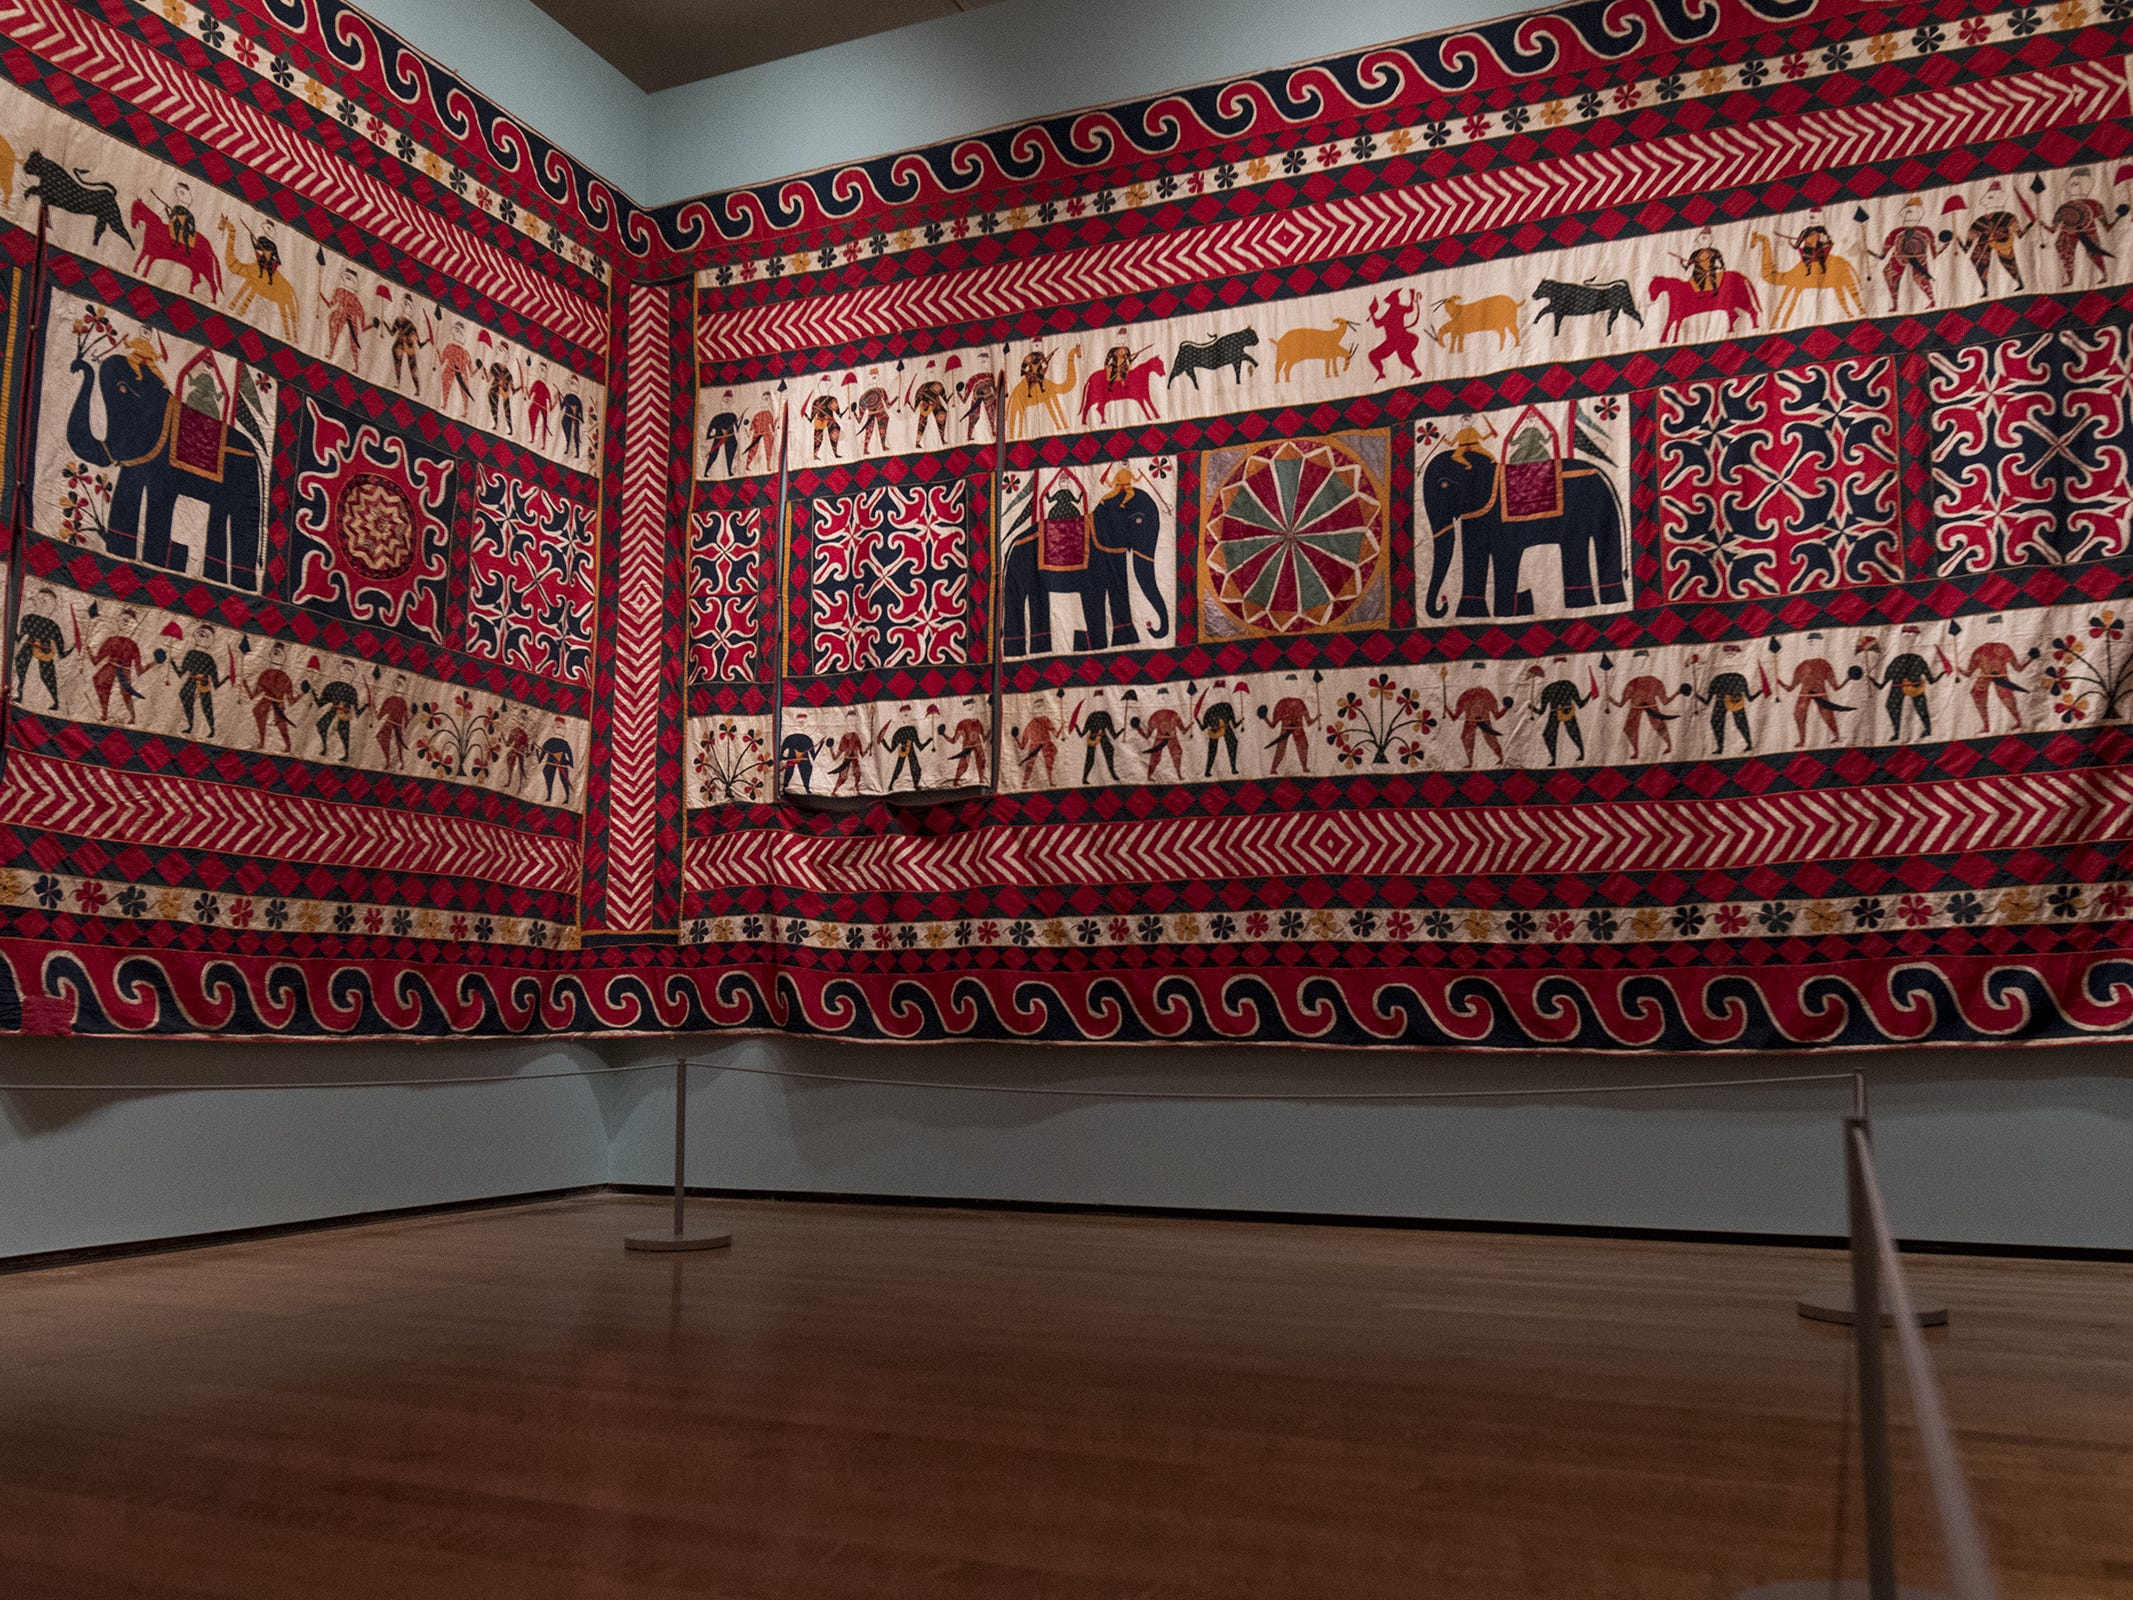 Huge silk panels line the walls in a part of the new Fabrics of India exhibit at the Cincinnati Art Museum.